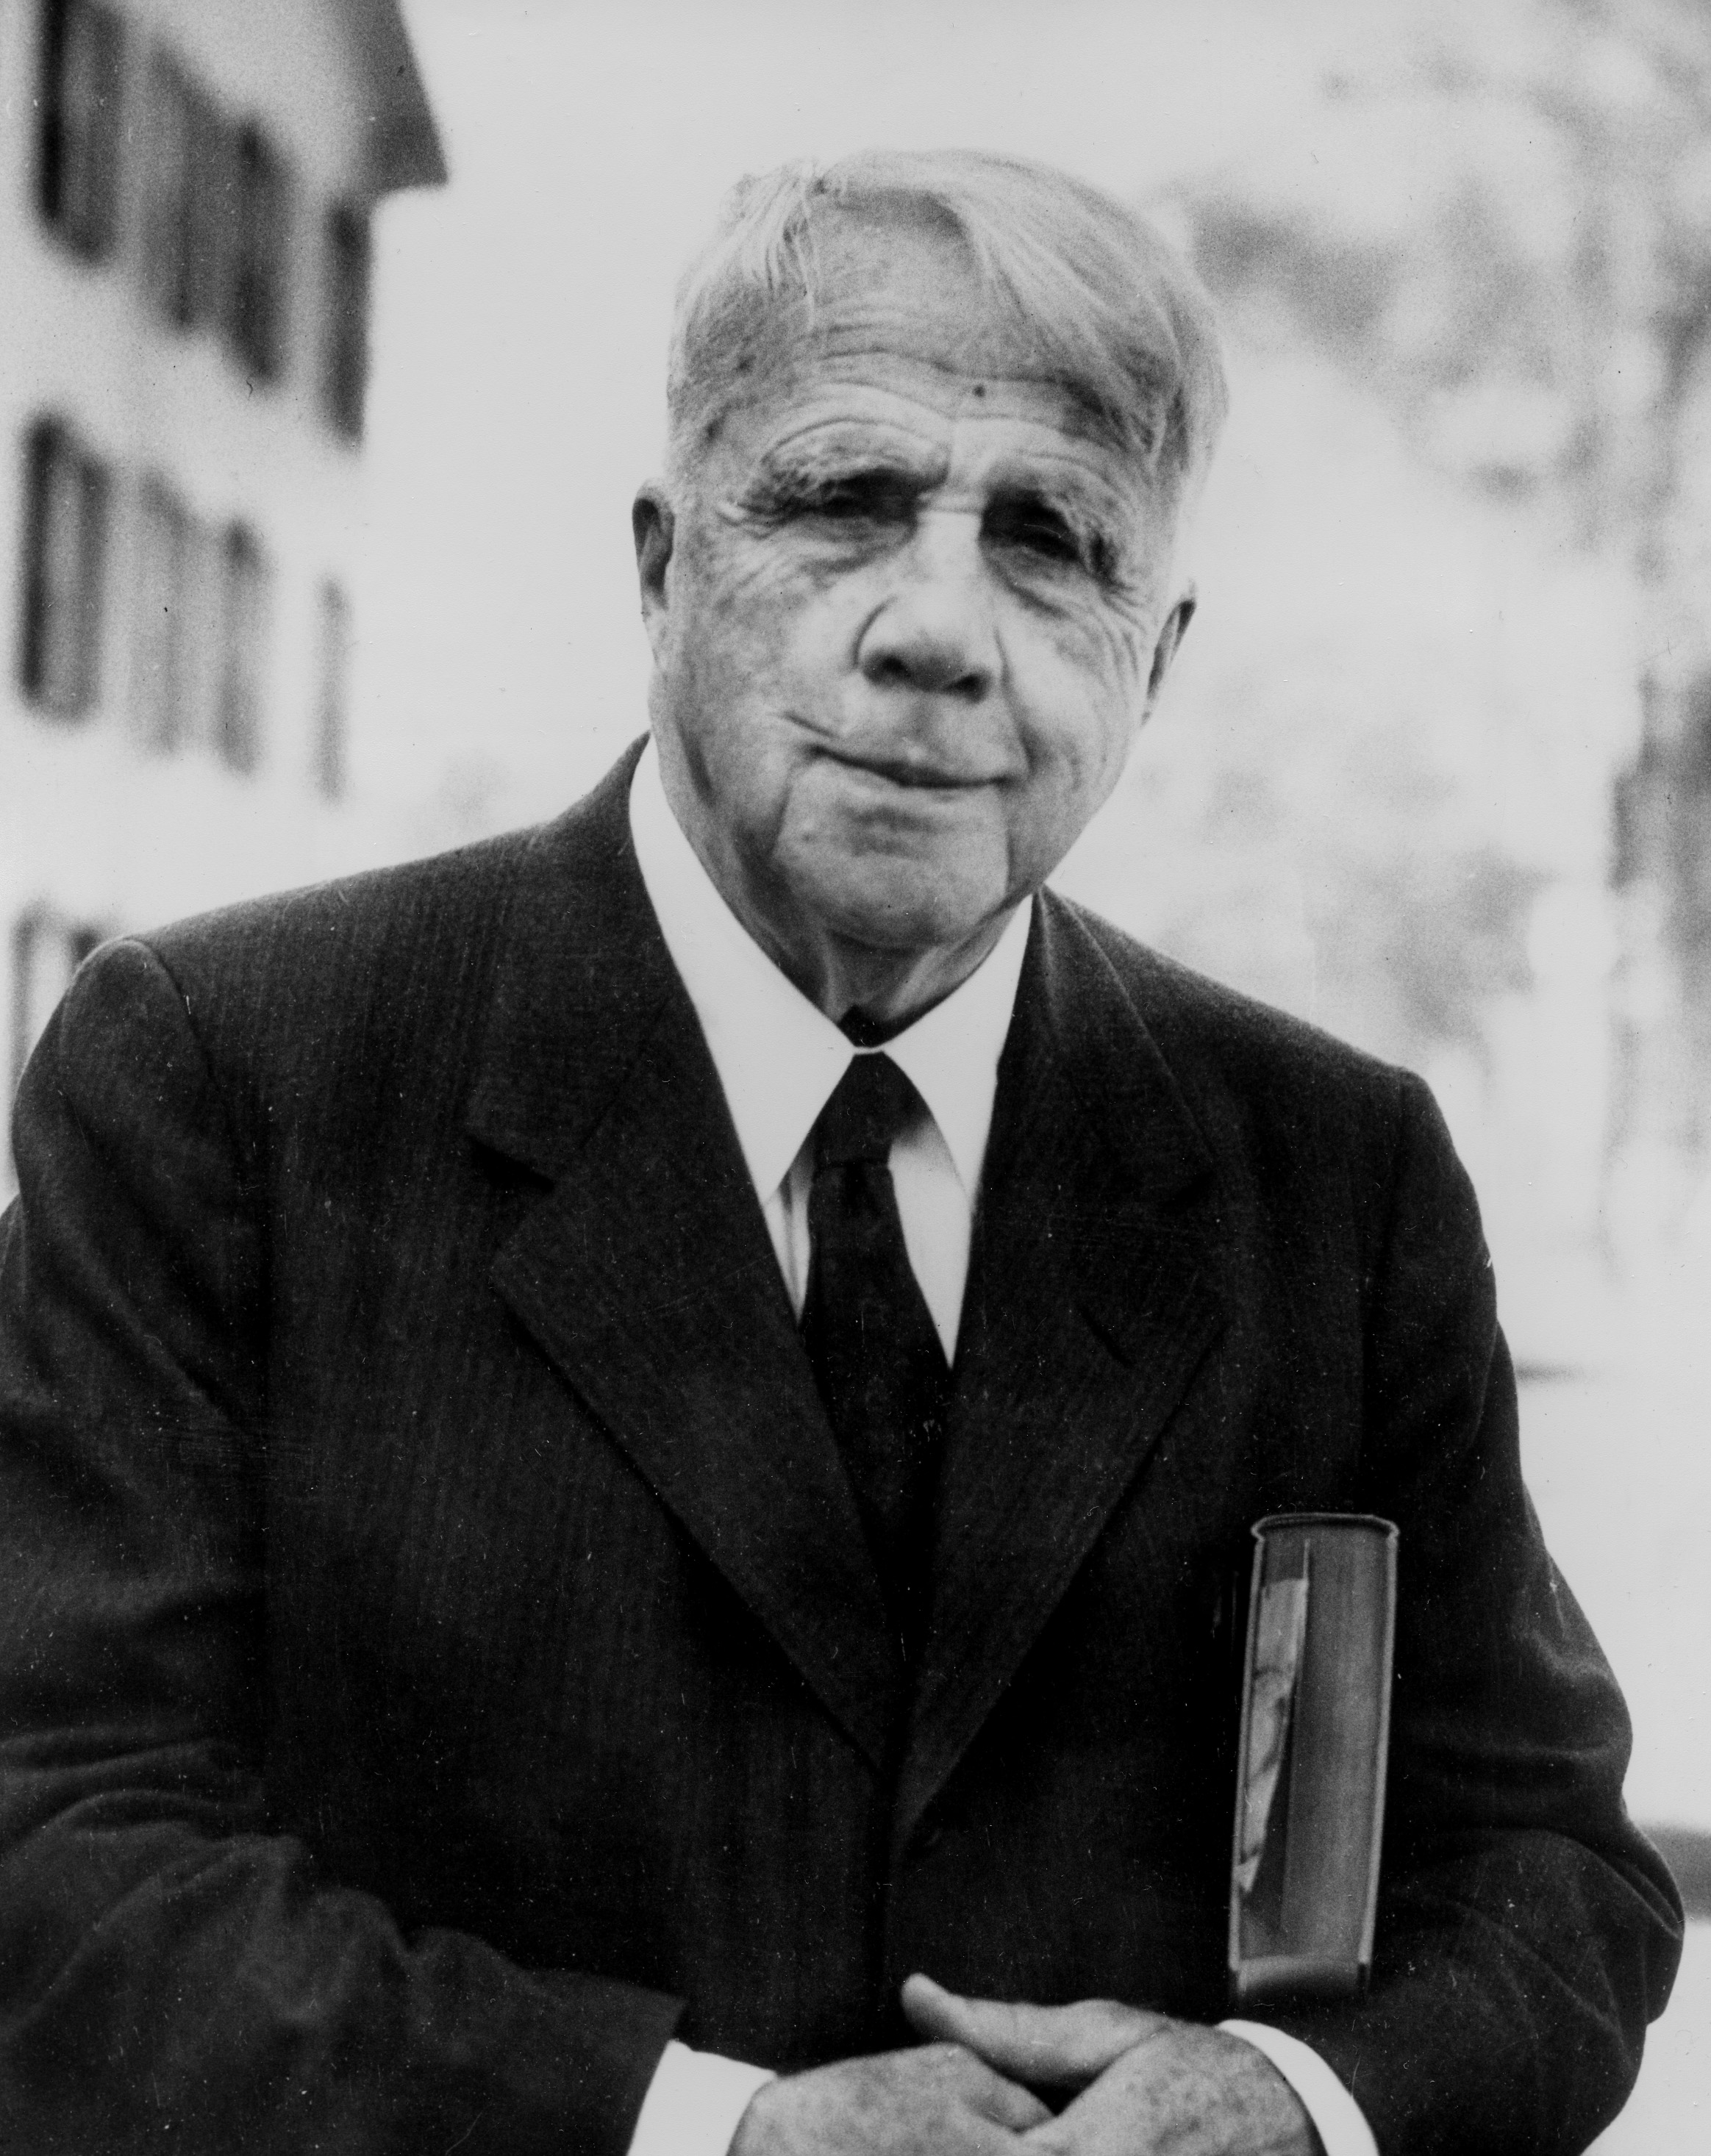 Frost - American poet Robert Frost is shown June 15, 1955 at an unknown location.  (AP Photo)